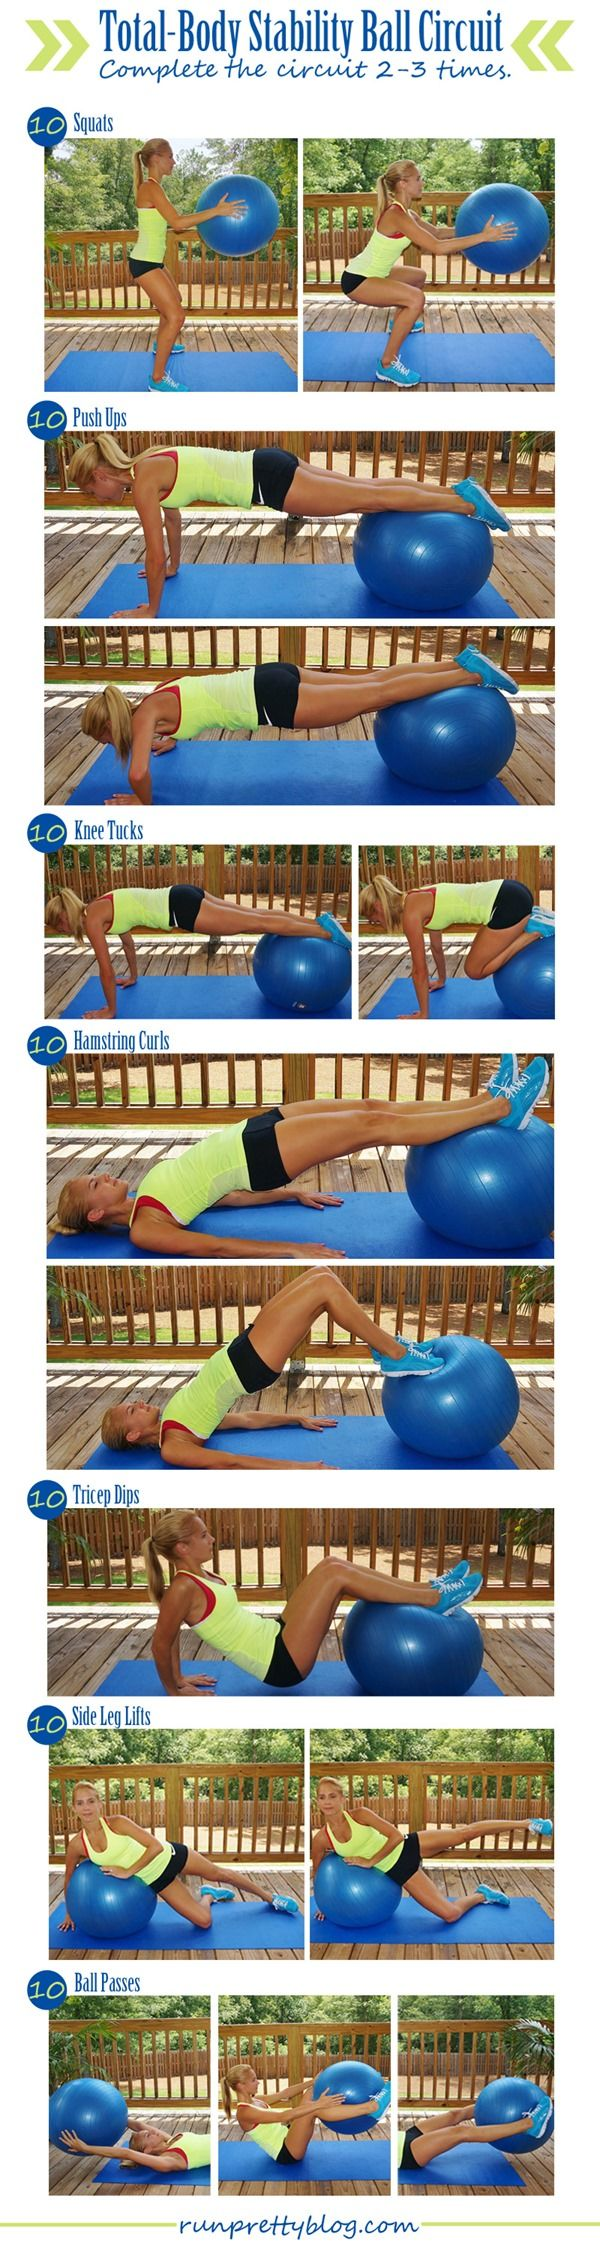 stability-ball-circuit